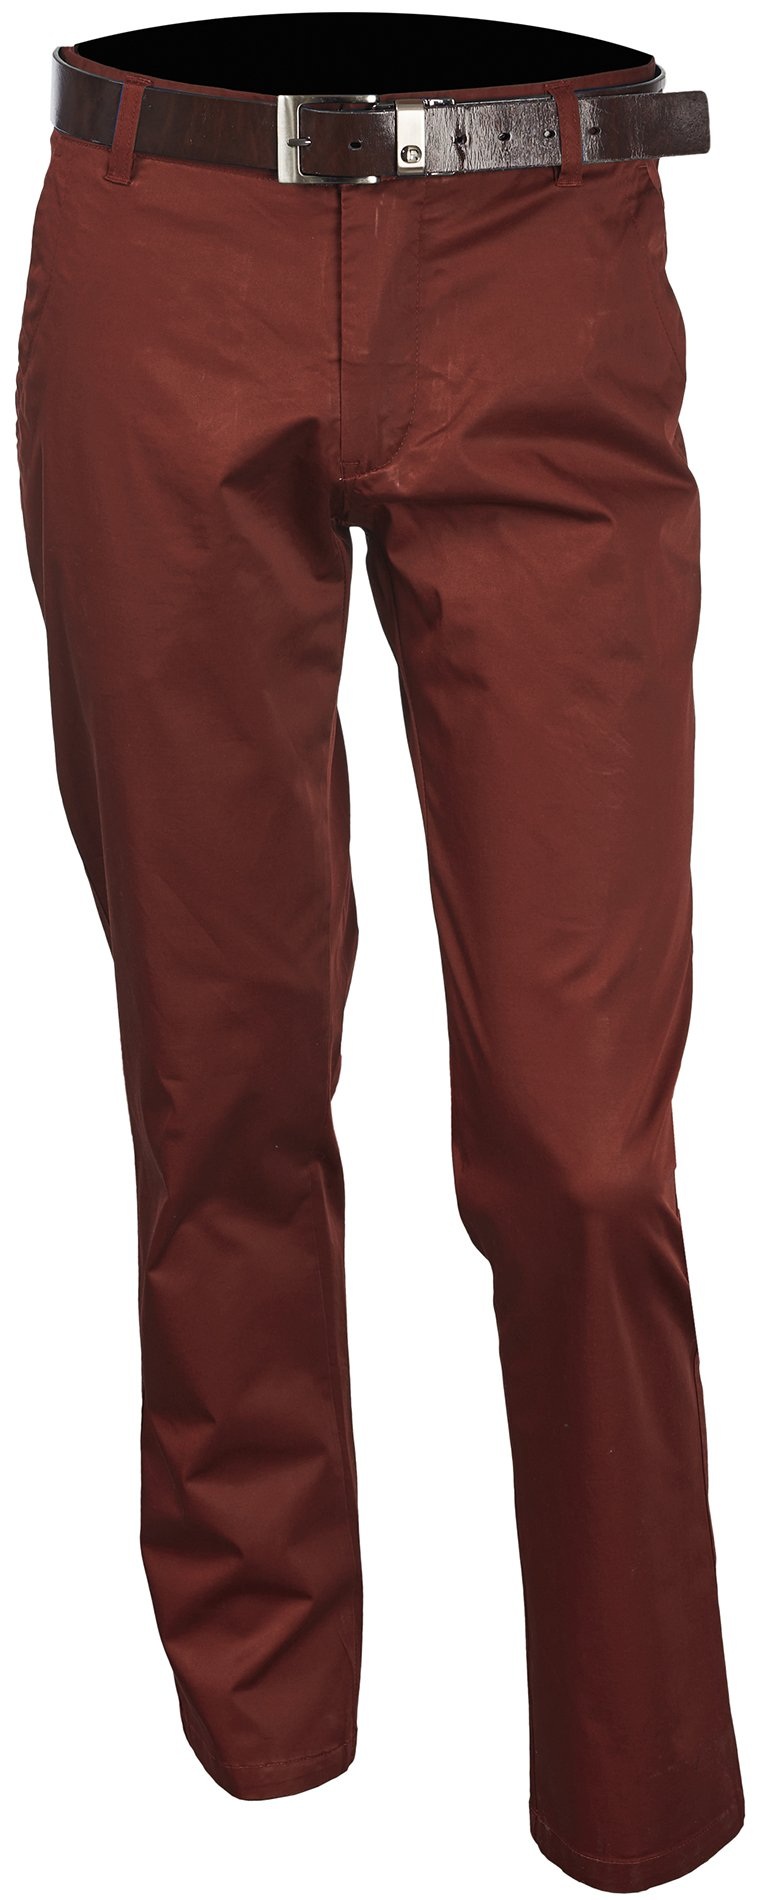 Inserch Brushed Cotton Chinos P021-31 Burgundy